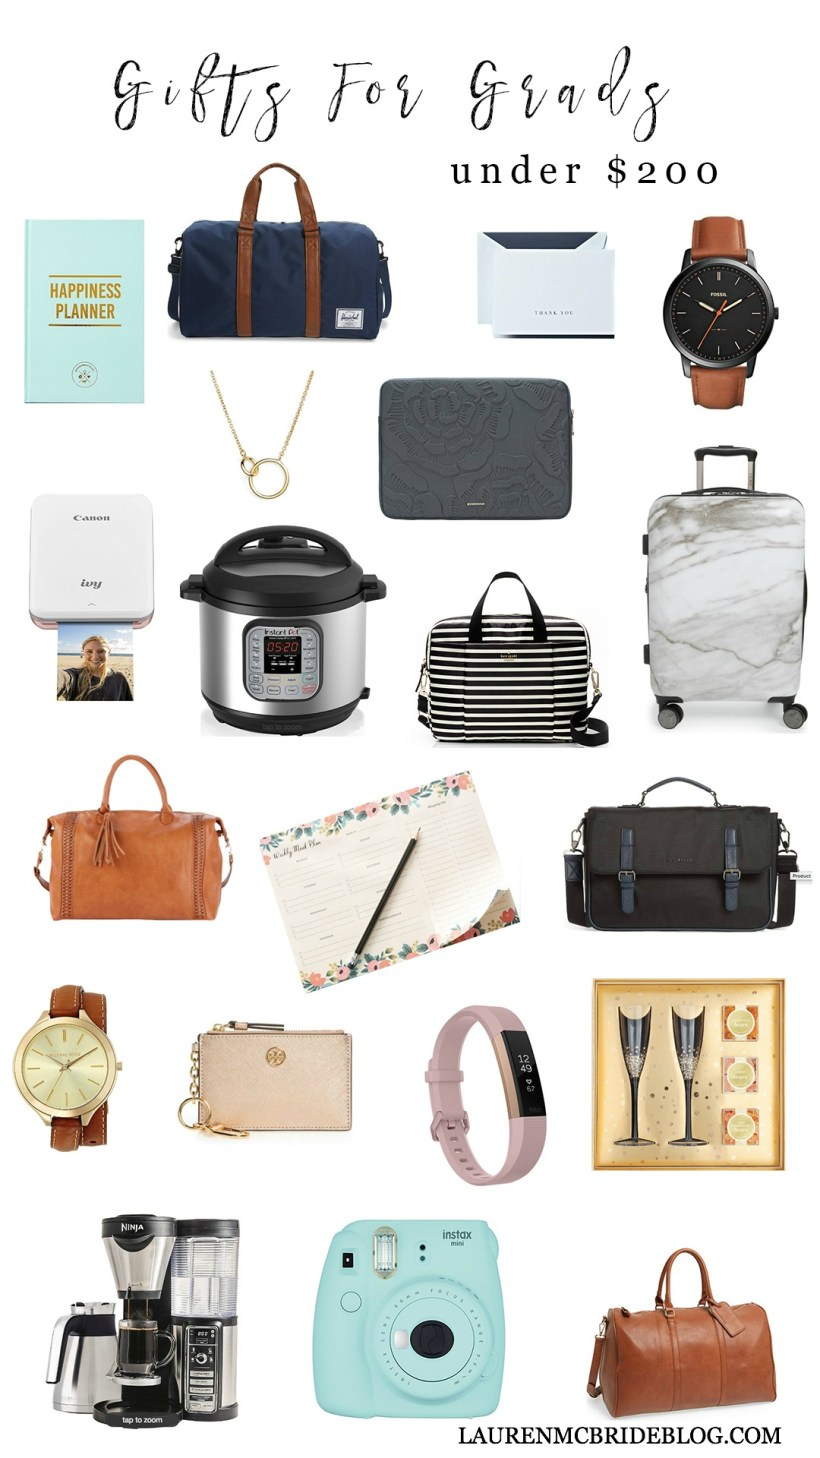 Life and style blogger Lauren McBride shares unique Gifts for Grads, including a variety of gift options for your high school or college graduate.